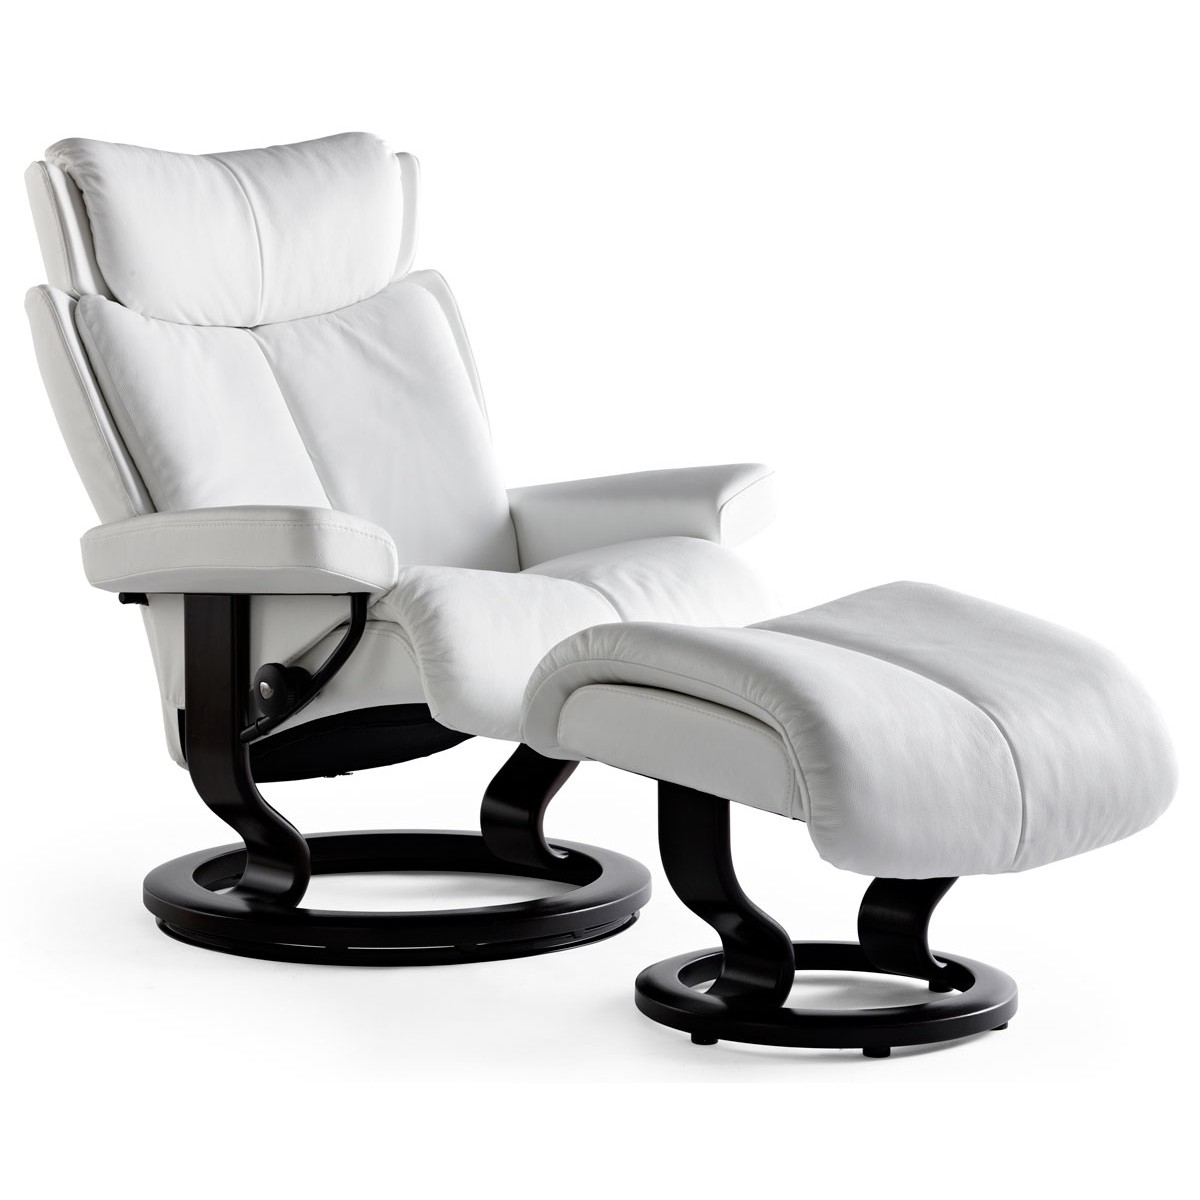 Stressless Sale Stressless Magic Large Recliner And Ottoman From 3 495 00